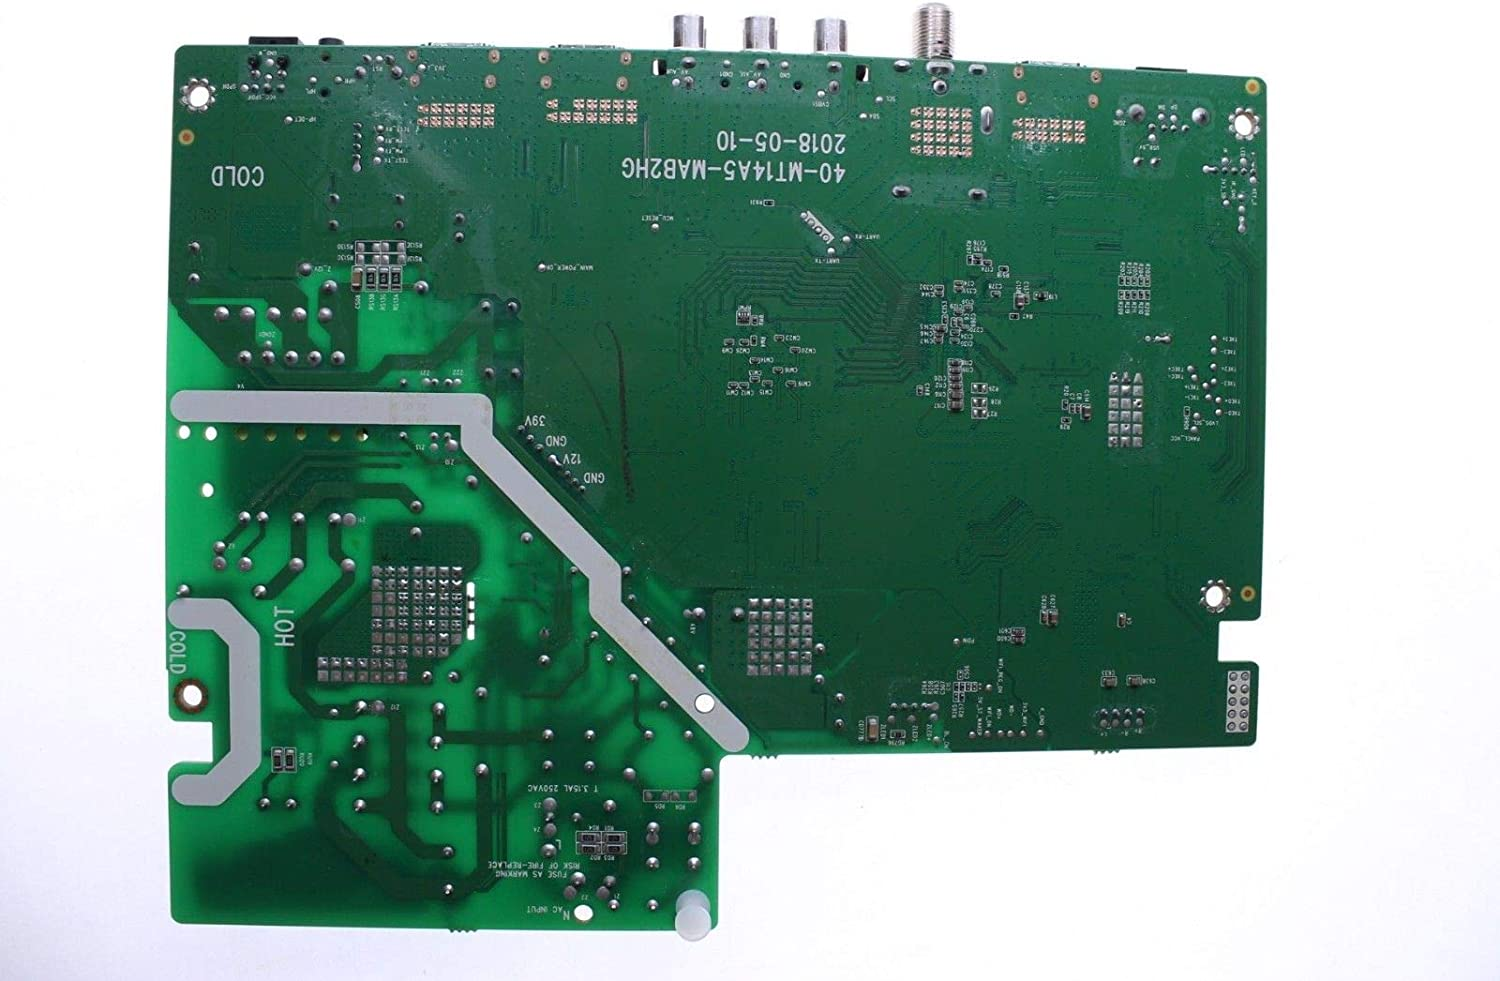 TCL 08-CS32TML-LC318AA Main//Power Supply Board 40-MT14A5-MAB2HG for TV 32S321